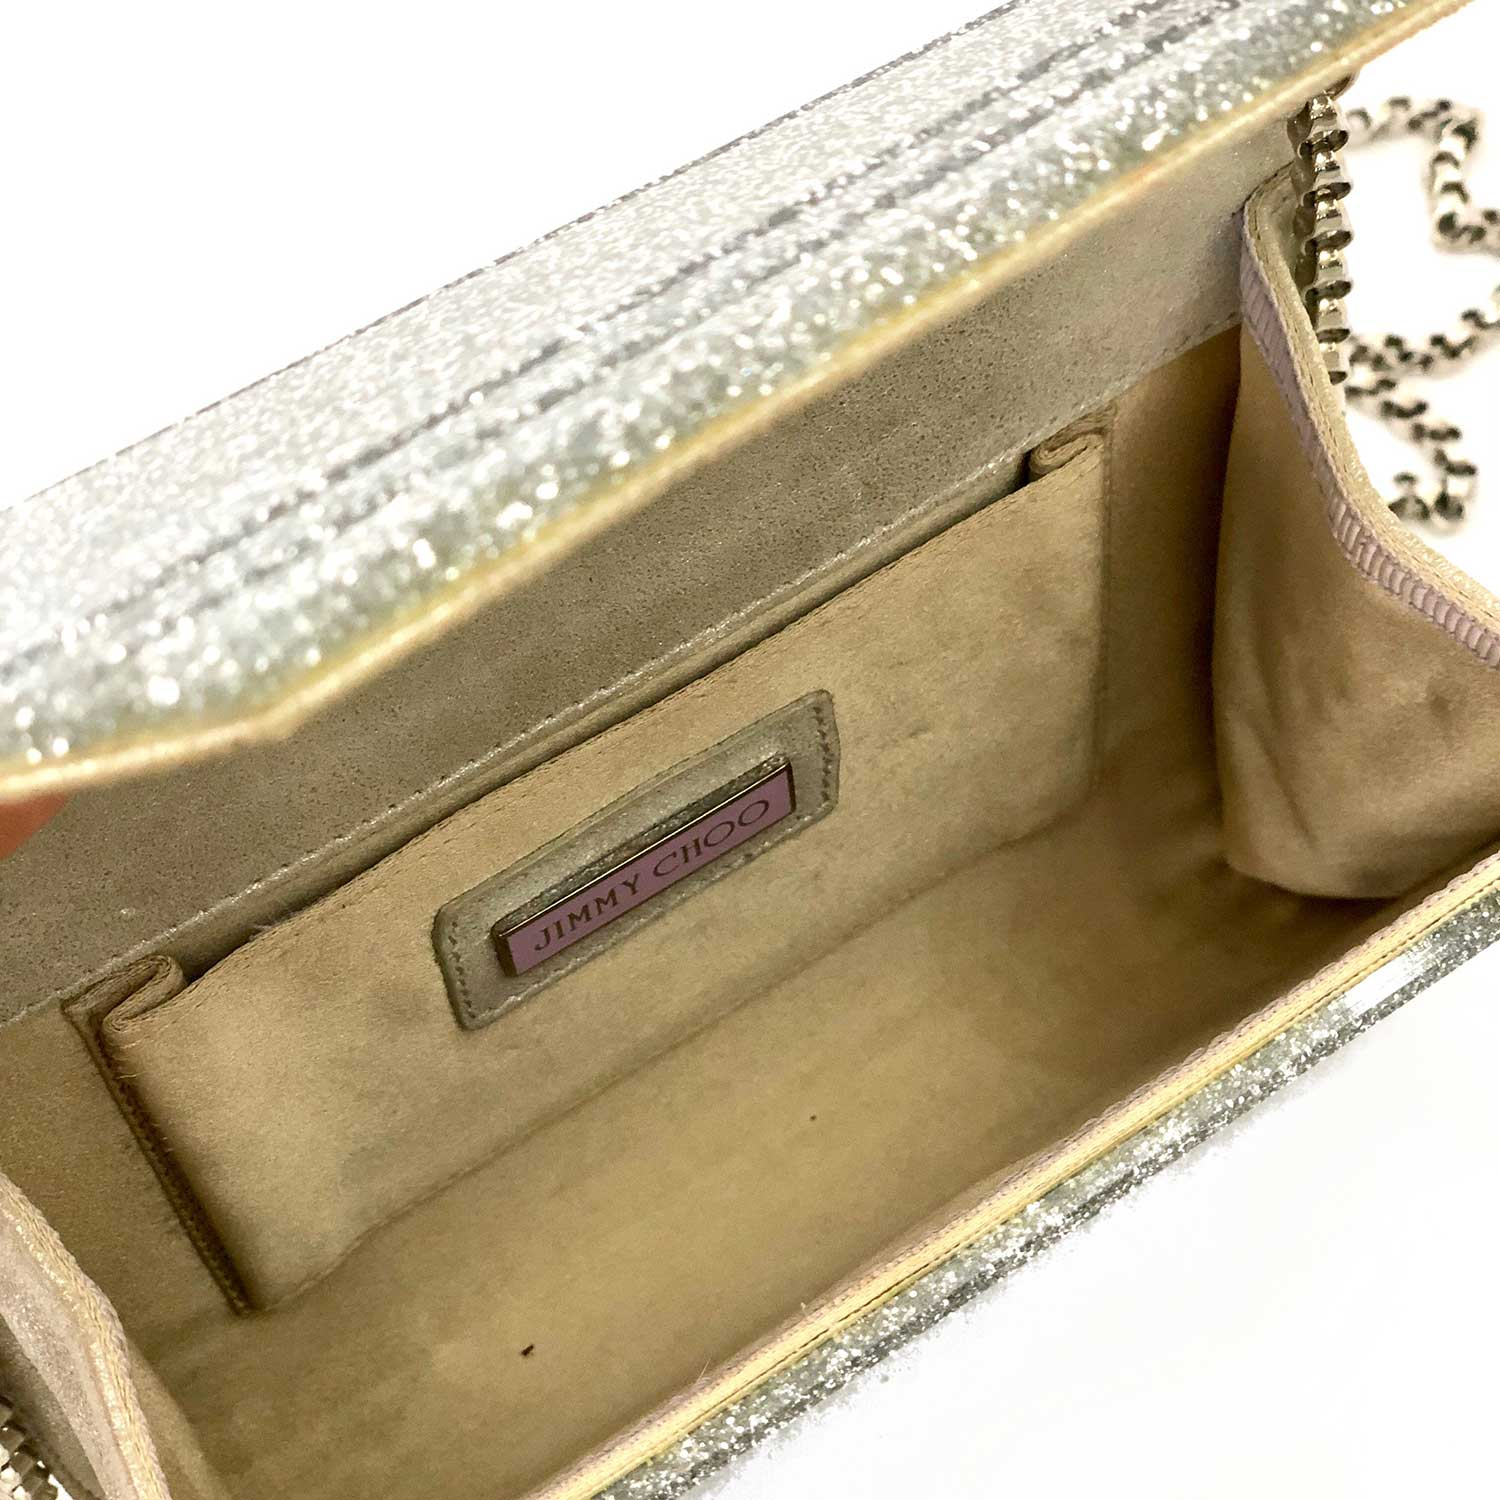 Clutch Candy Jimmy Choo Prata